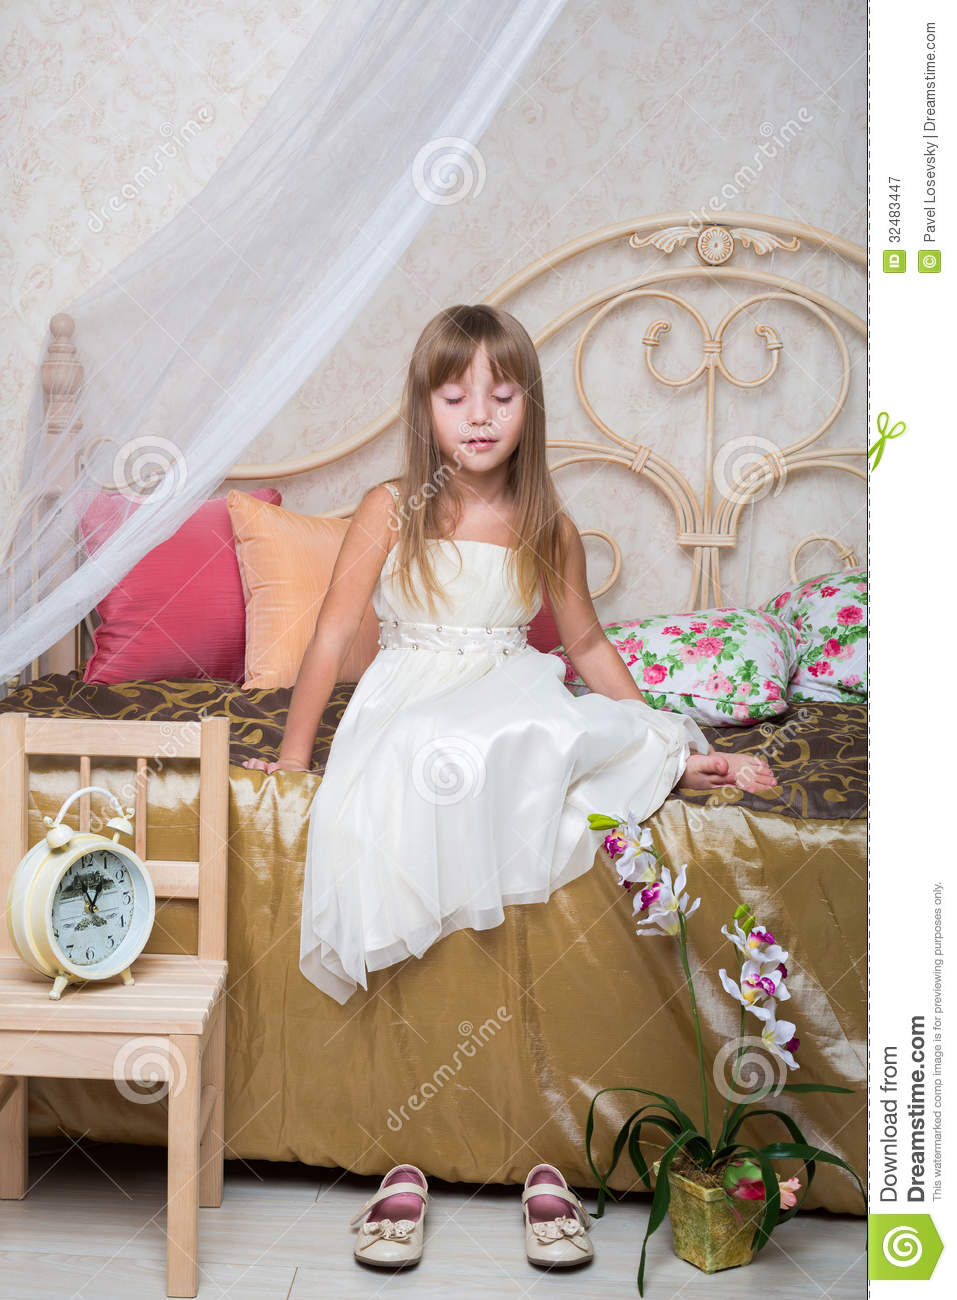 Girl With The Blog: A Little Girl Sitting With Eyes Closed On The Bed Stock